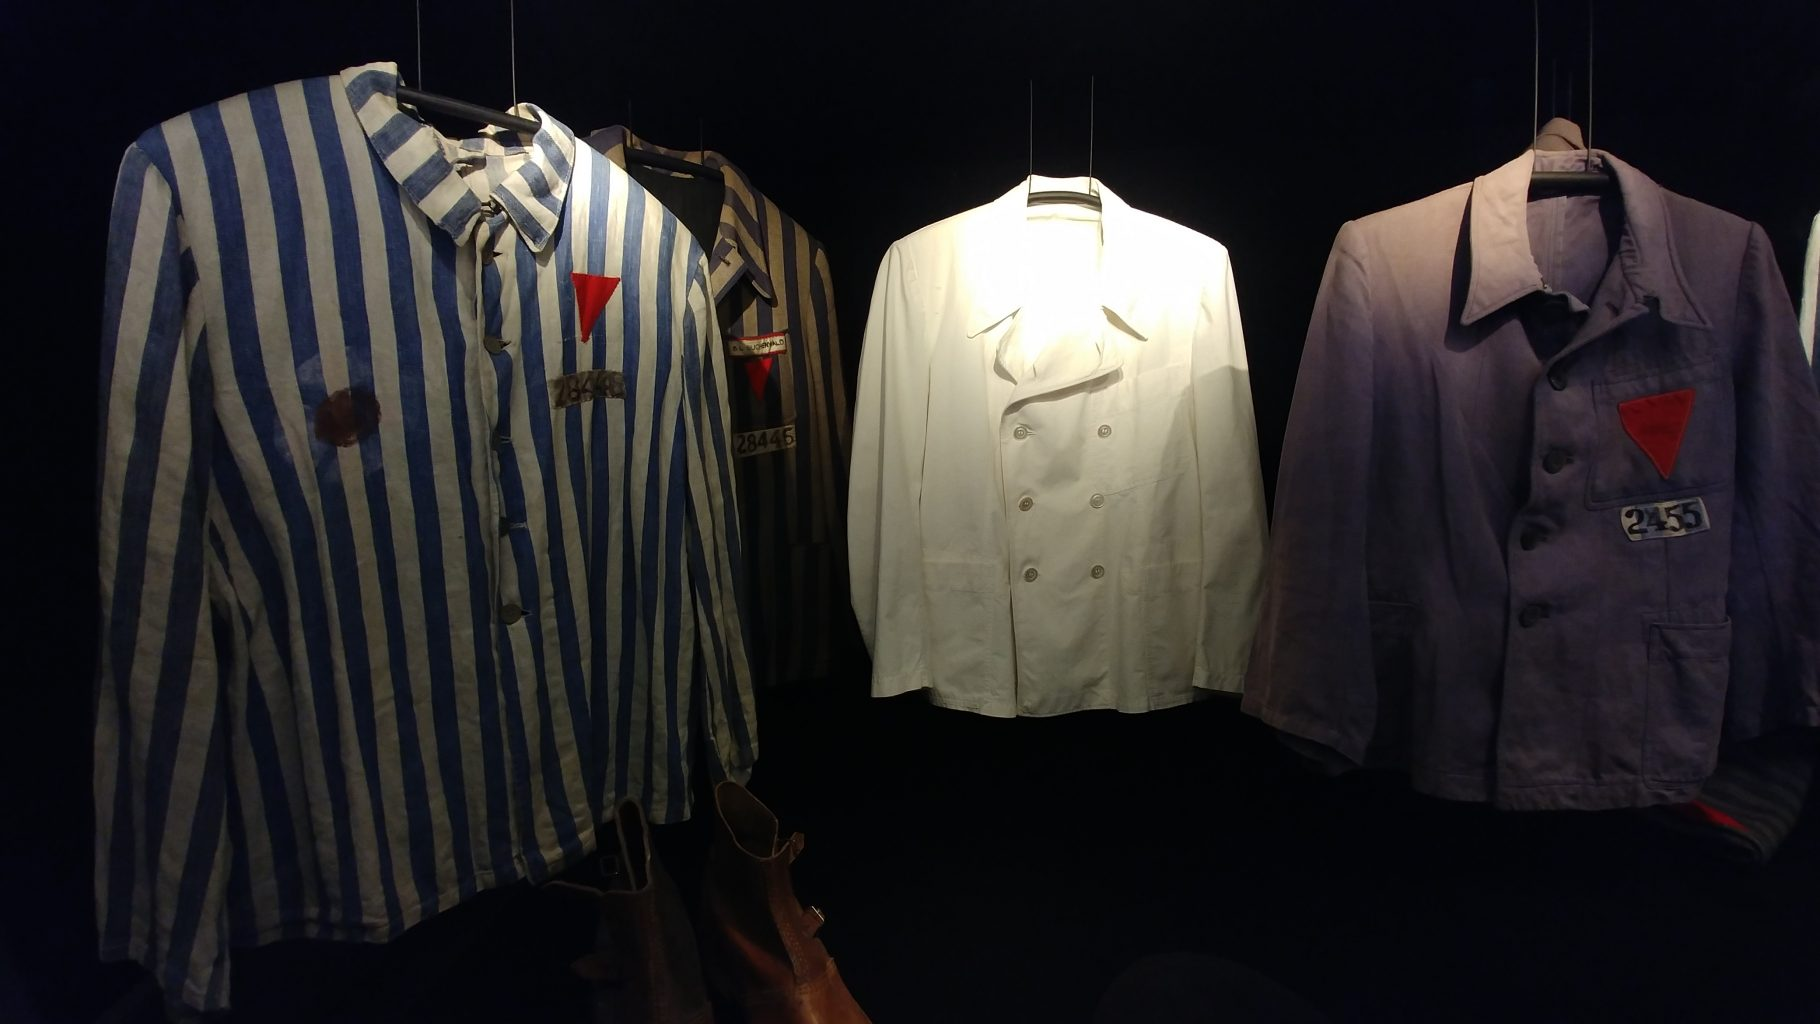 Buchenwald prisoners' clothing